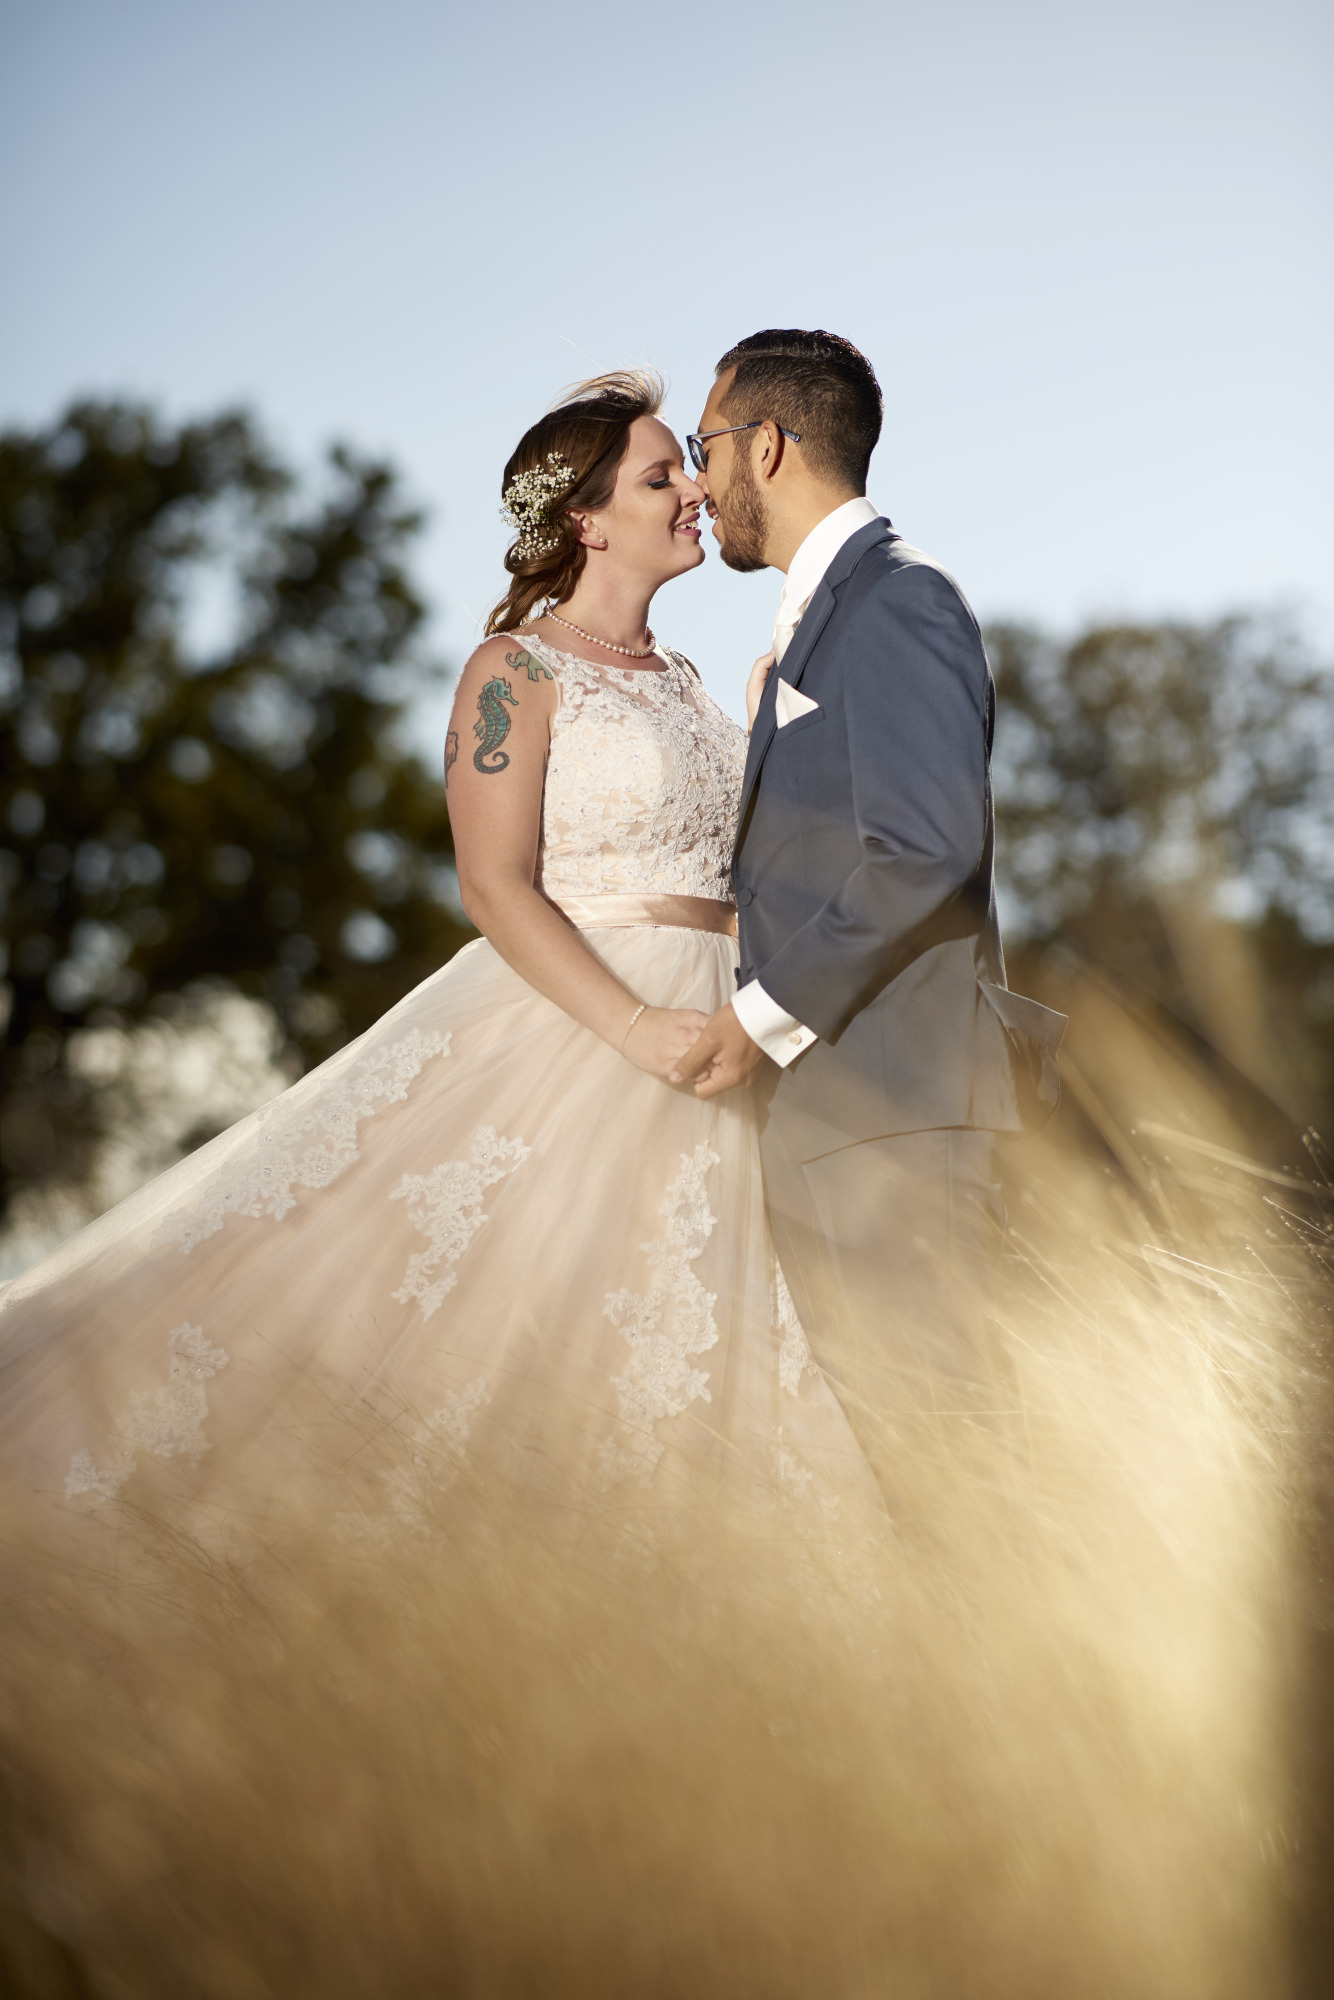 Austin Wedding Video Packages - Austin Wedding Videographers